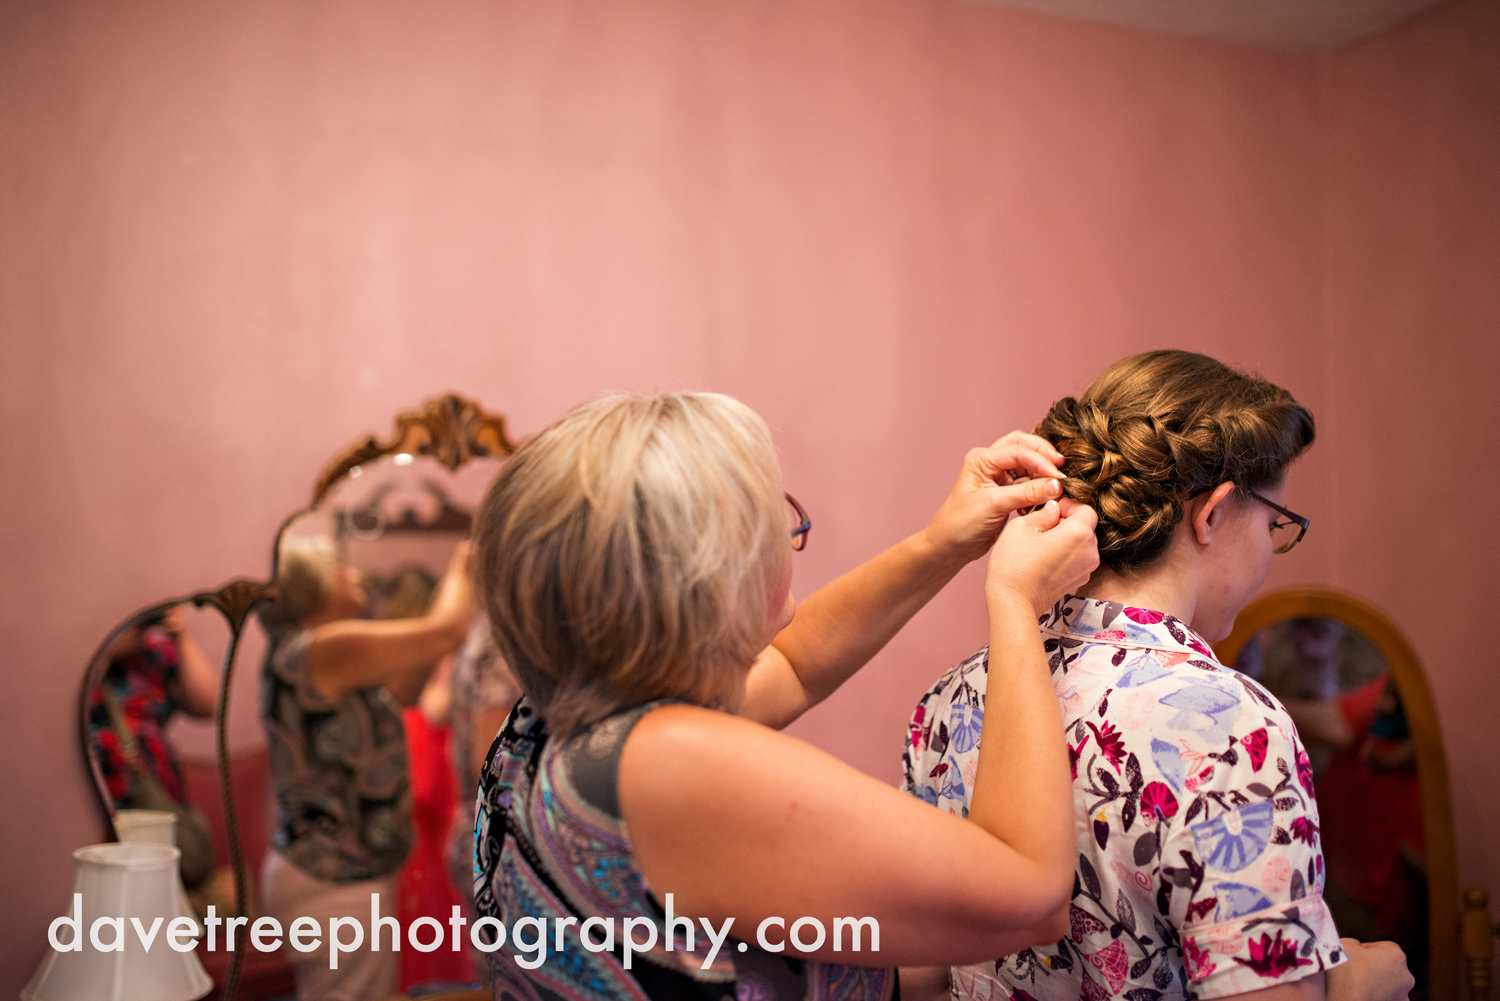 grand_haven_wedding_photographer_weaver_house_wedding_098.jpg